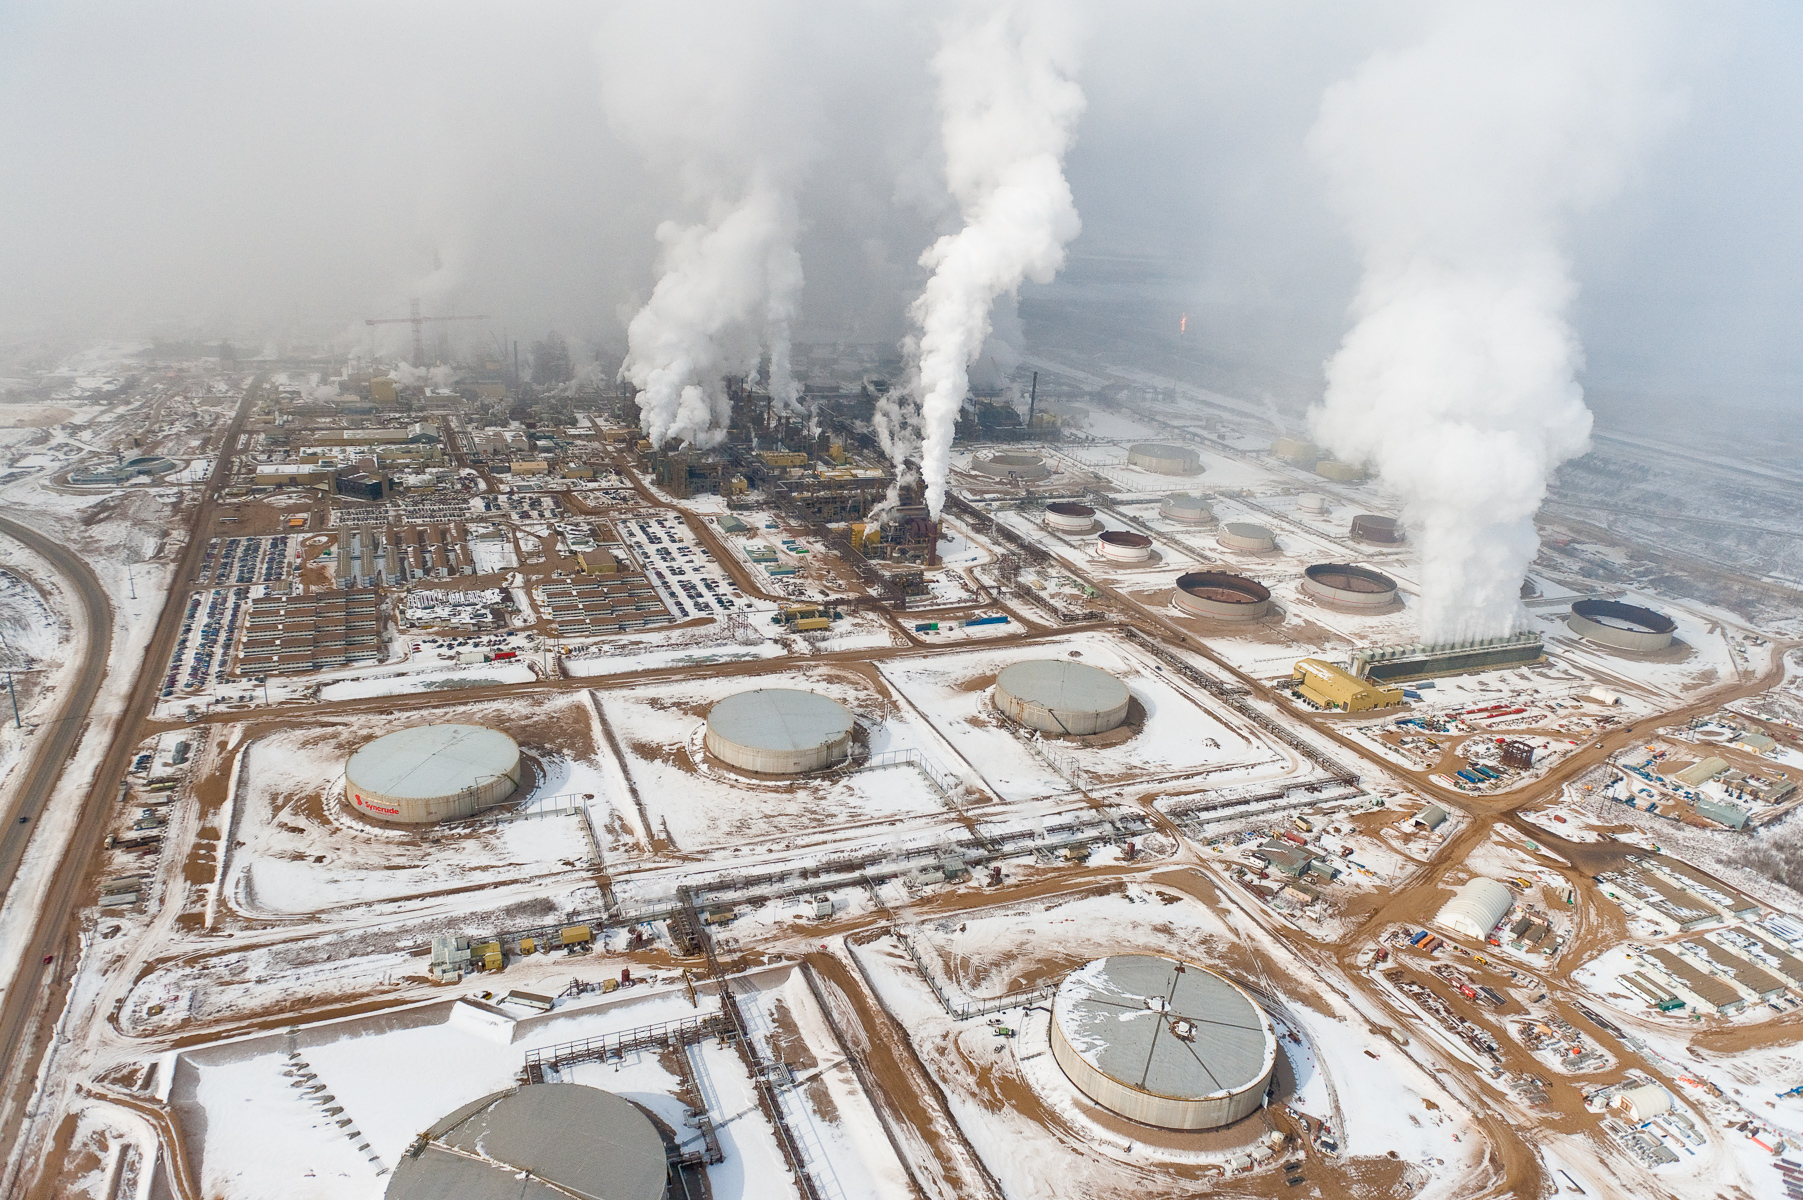 """Tar Sands Upgrader in Winter                                                                    Northern Alberta. Canada. 2010. The Alberta Tar Sands are Canada's single largest, and fastest growing, source of carbon. They produce about as much carbon annually as the nation of Denmark. The refining of the tar-like bitumen requires far more water and energy than the production of conventional oil and produces significantly more greenhouse gas.    Limited Edition Fine Art PrintsAll prices in U.S. dollars.Prices are for prints only and do not include tax or shipping.16""""x24""""  edition of 25  /  $100020""""x30""""edition of 15  /  $150030""""x45""""edition of 10  /  $350040""""x60"""" /        edition of 6   /   $6000"""